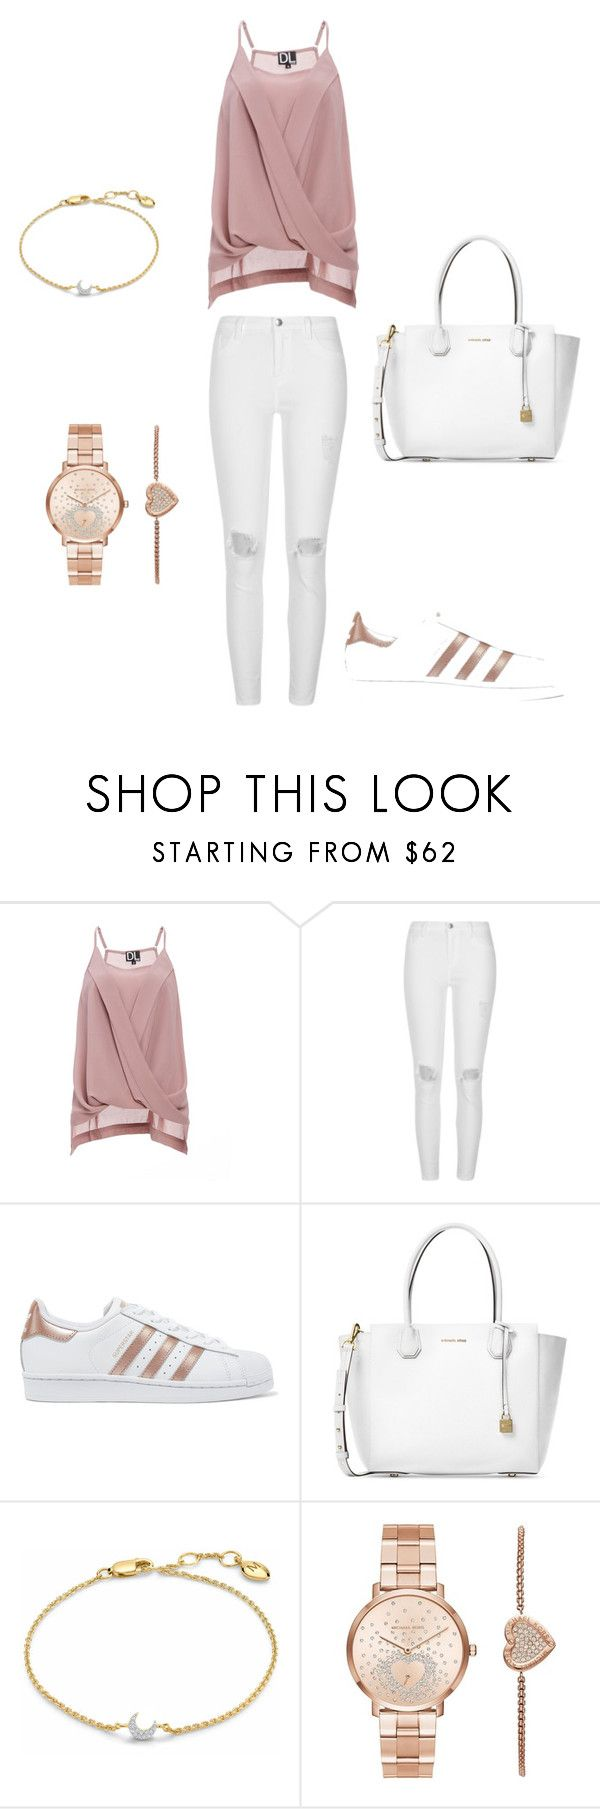 """Rose gold fever"" by stefi-m ❤ liked on Polyvore featuring DailyLook, River Island, adidas Originals, Michael Kors and Missoma"